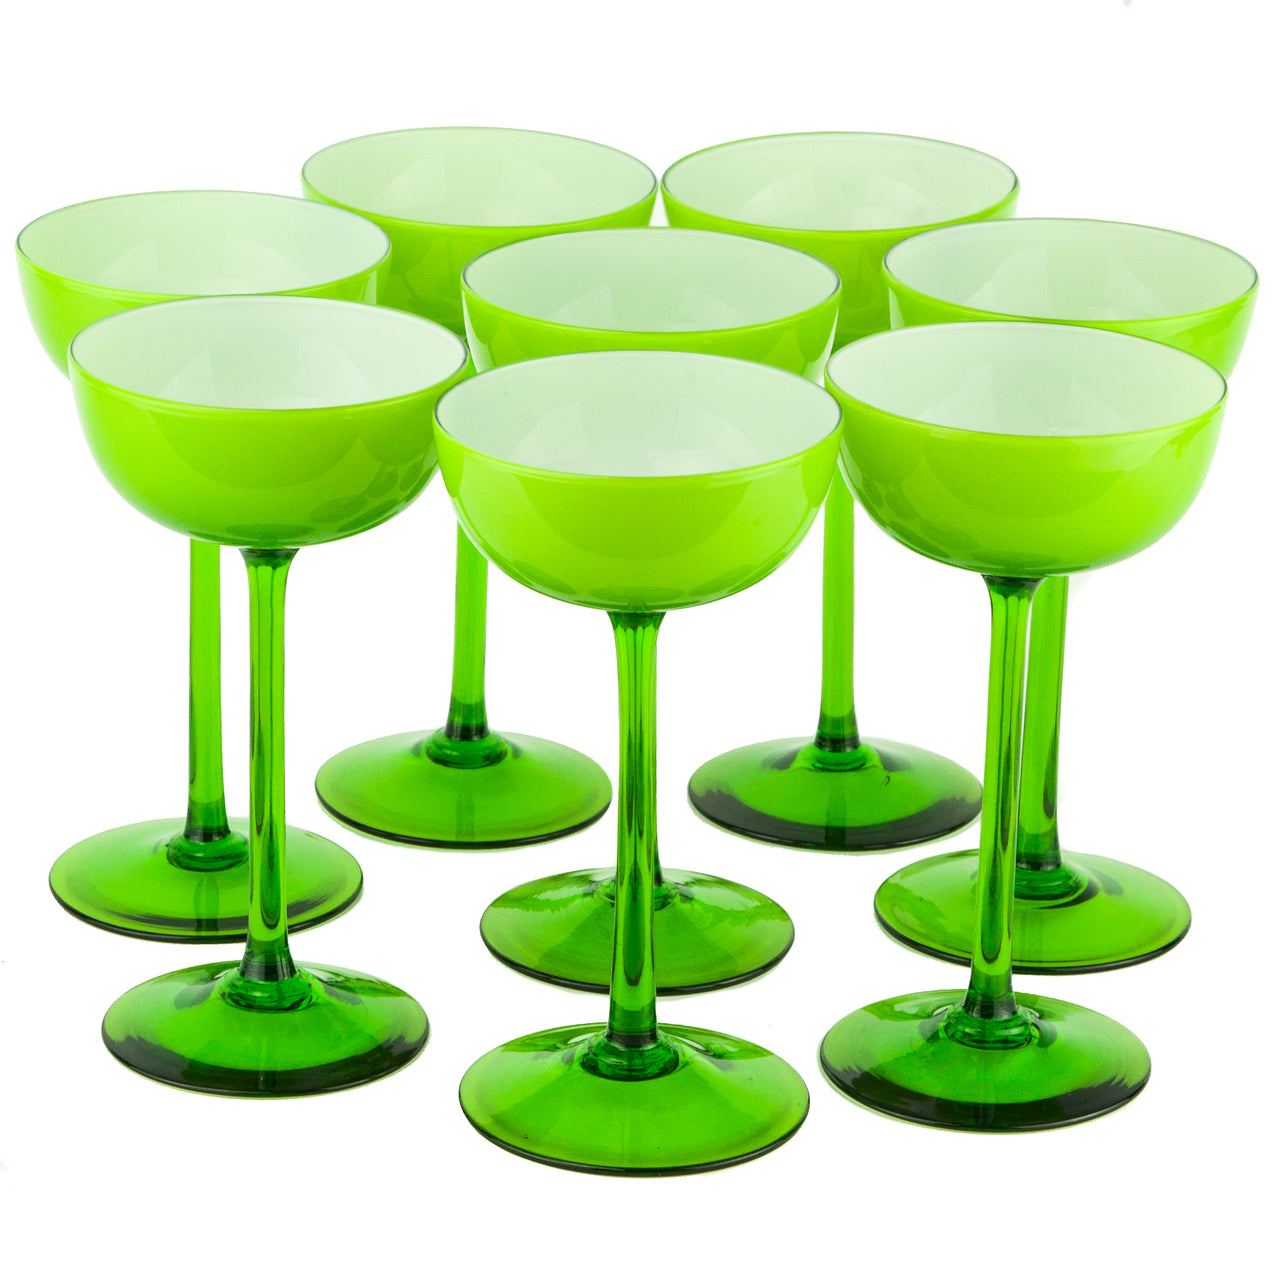 Carlo Moretti Green Cased Coupe Glasses | The Hour Vintage